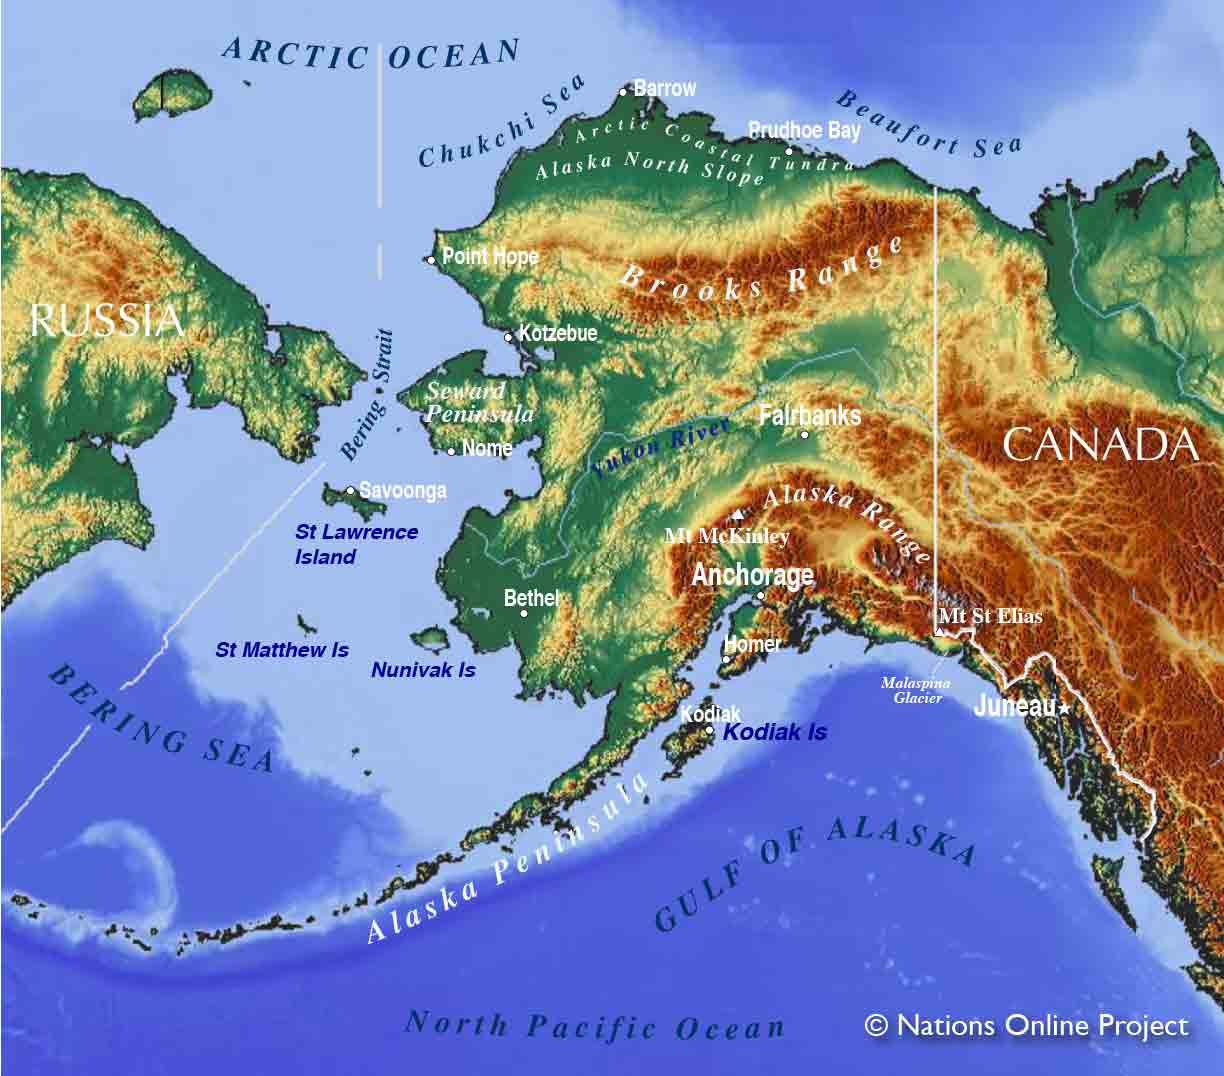 alaska topographic regions map